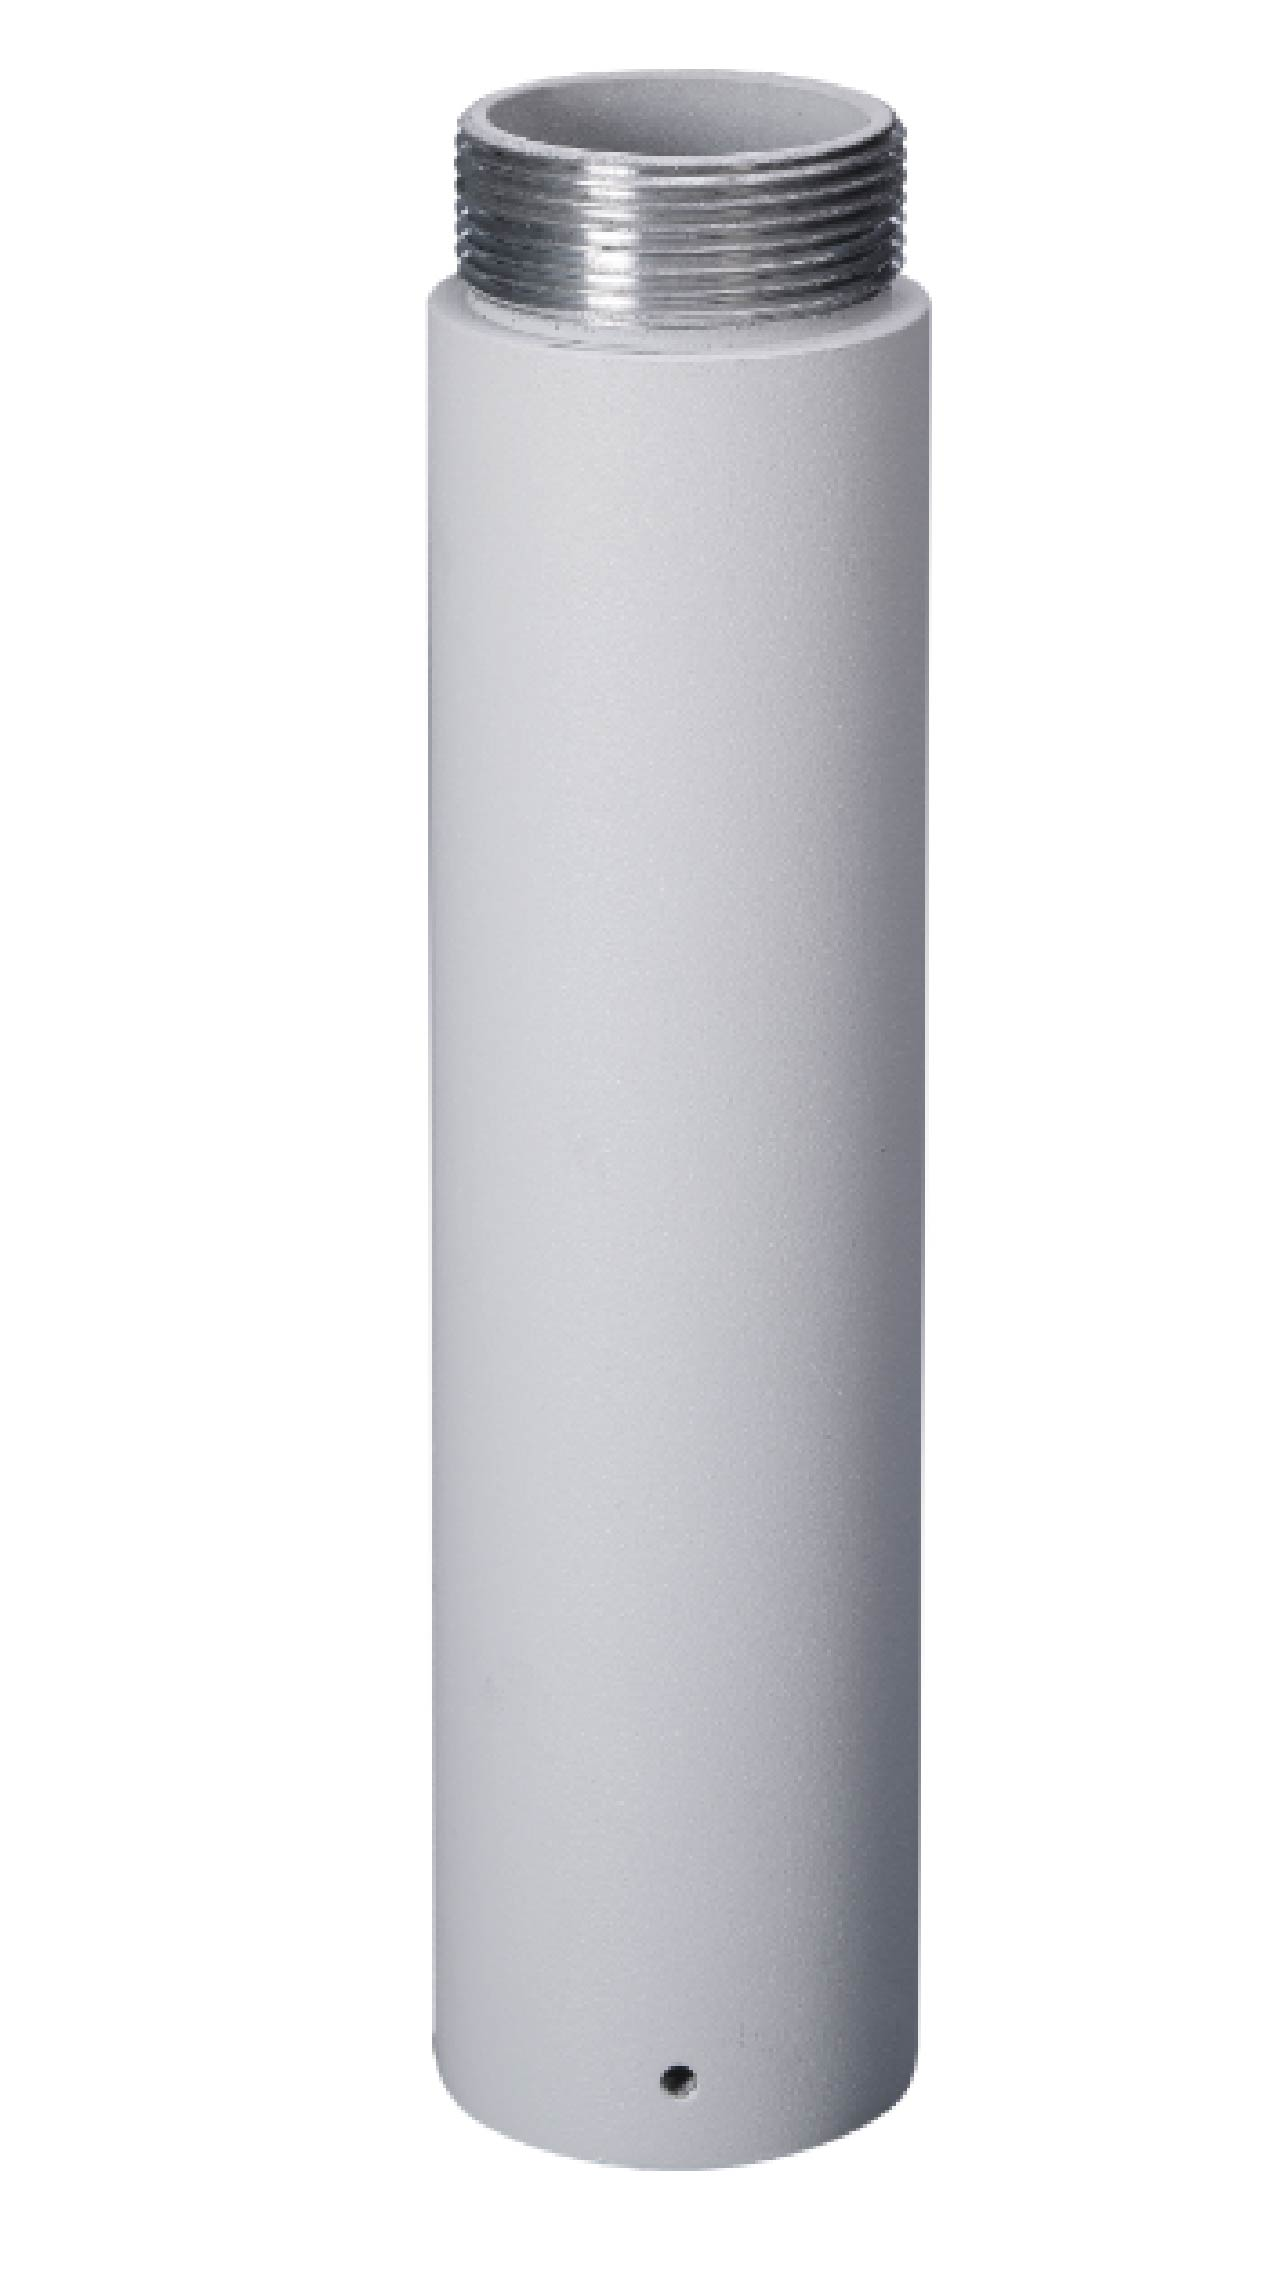 Ceiling mount 20cm (7.8 inch) extension for LE 261